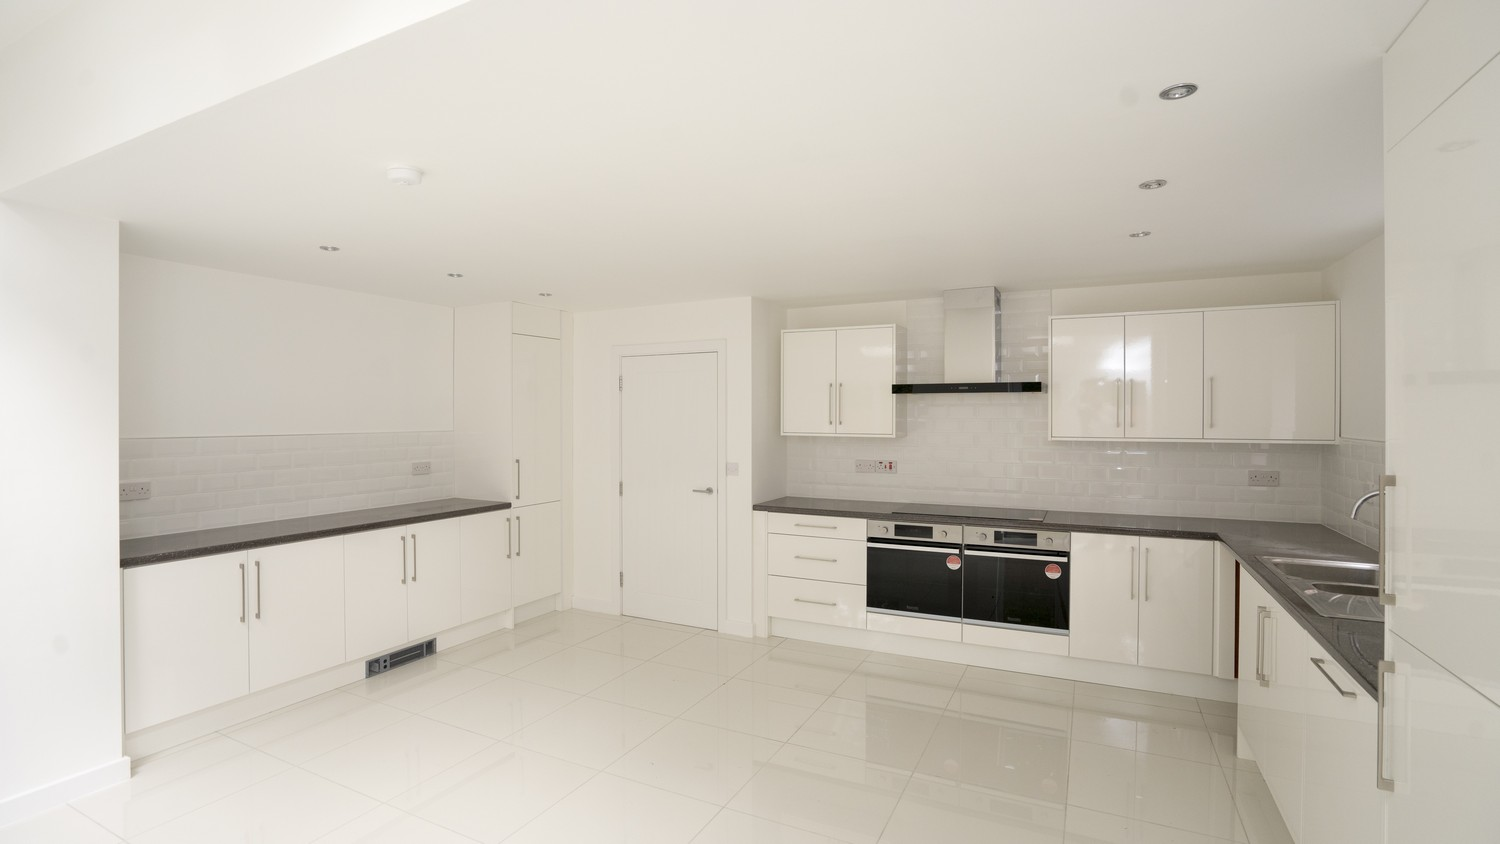 Alternative view of the gloss white kitchen installed in Liverpool, giving the space and bright and open feel.